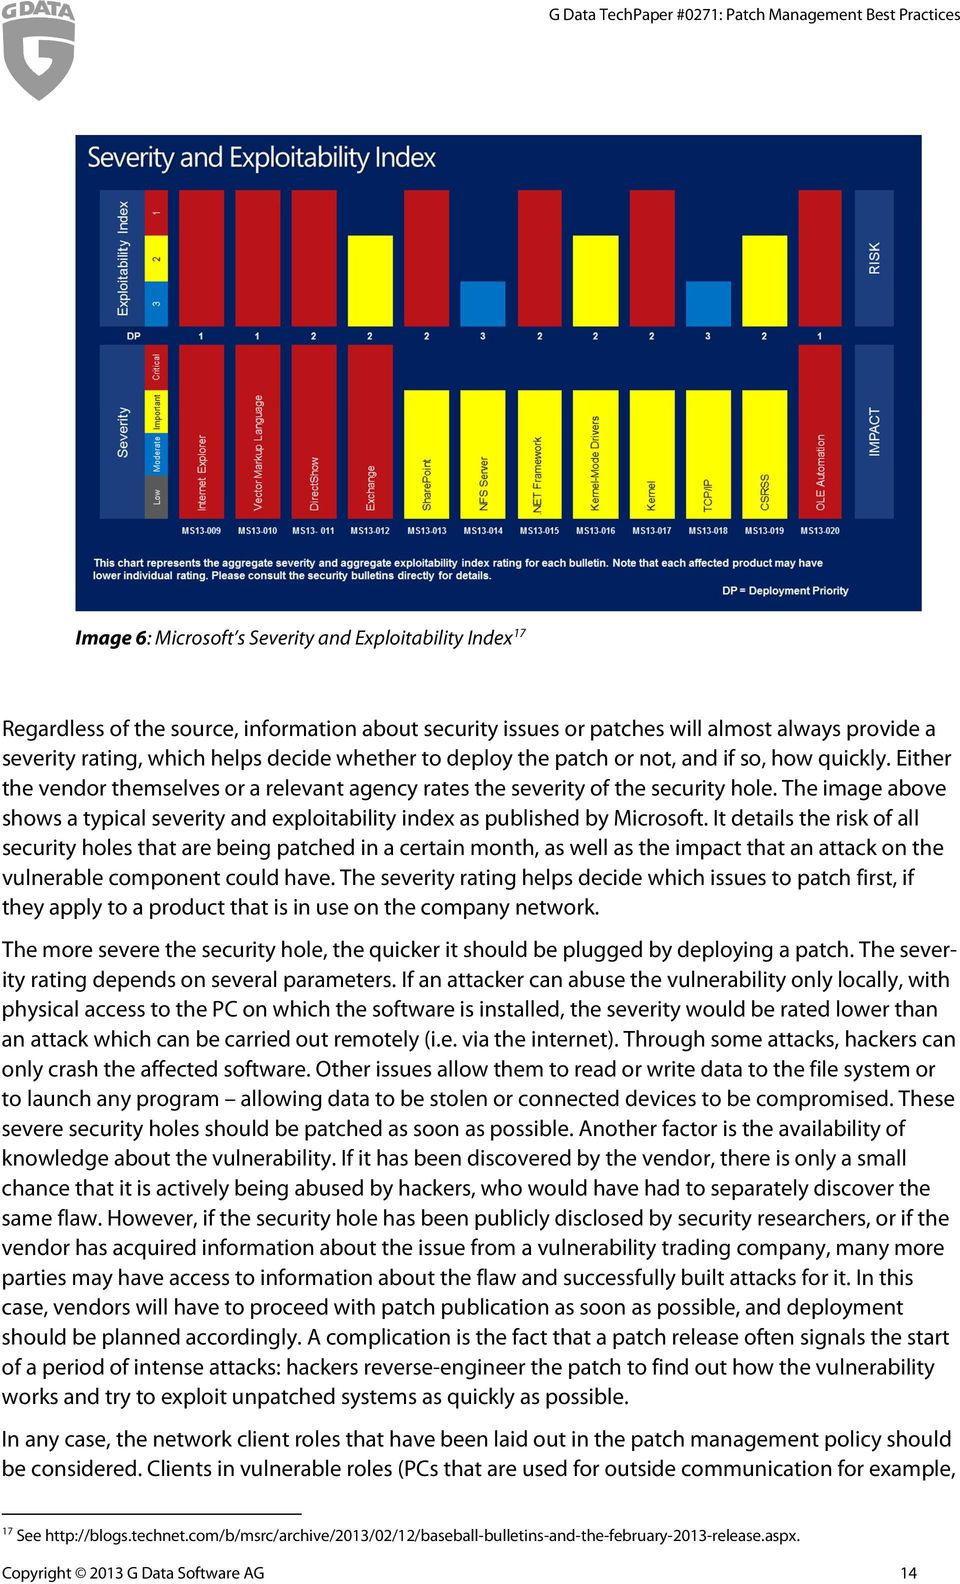 The image above shows a typical severity and exploitability index as published by Microsoft.